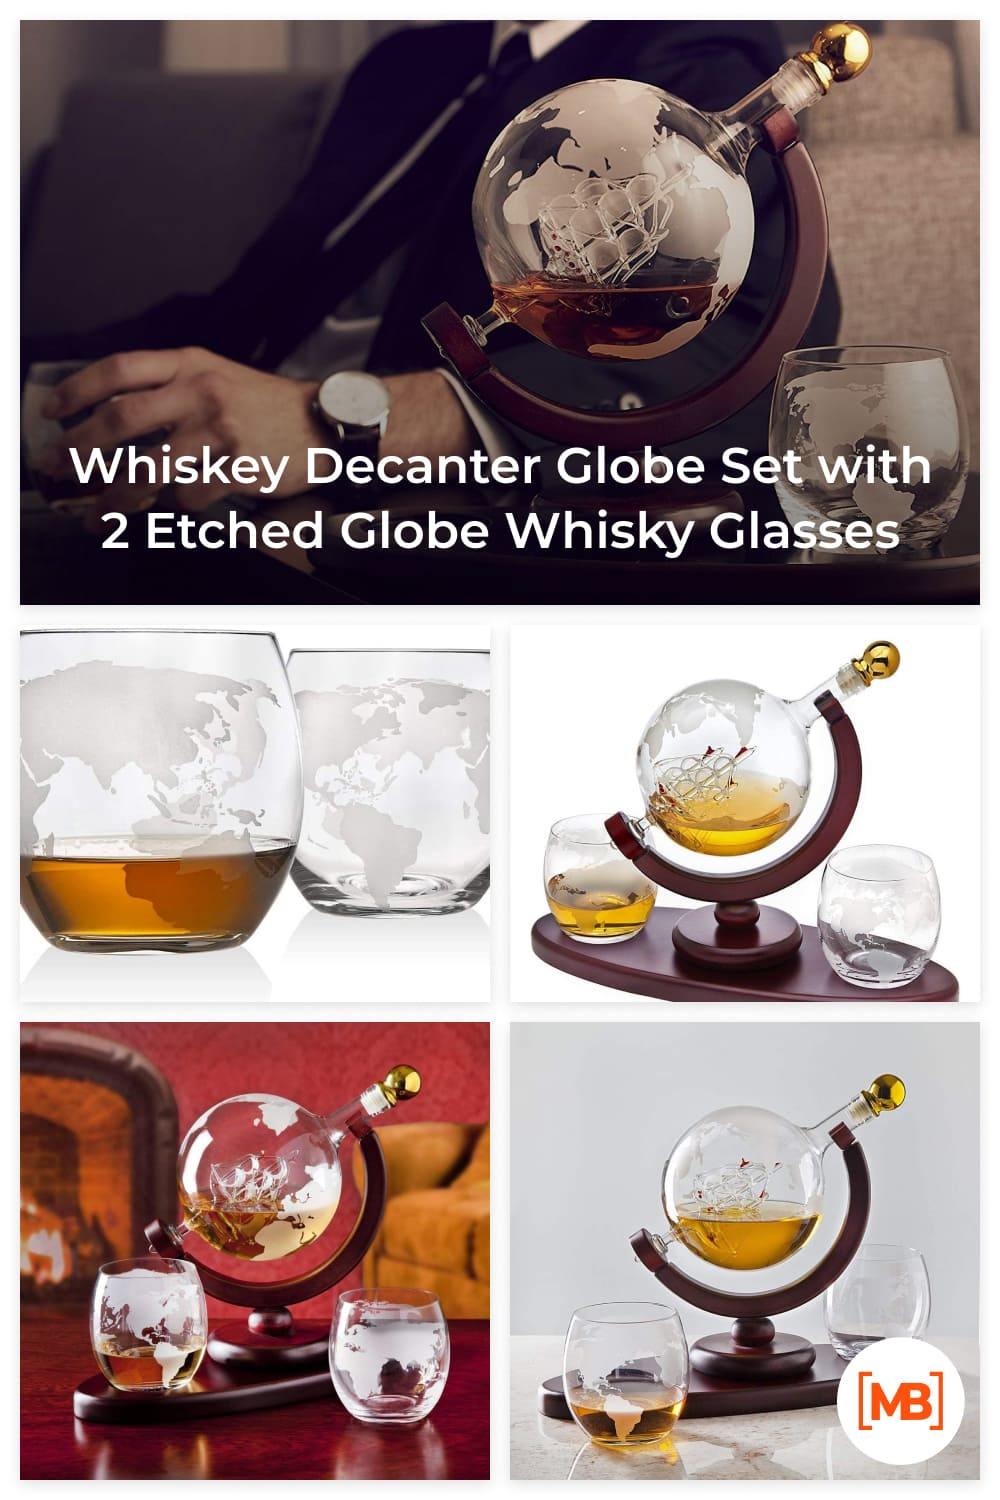 Hand blown elegant whiskey decanter dispenser featuring an etched globe design and antique ship in the bottle will undoubtedly enhance your drinking experience while making a bold impression.